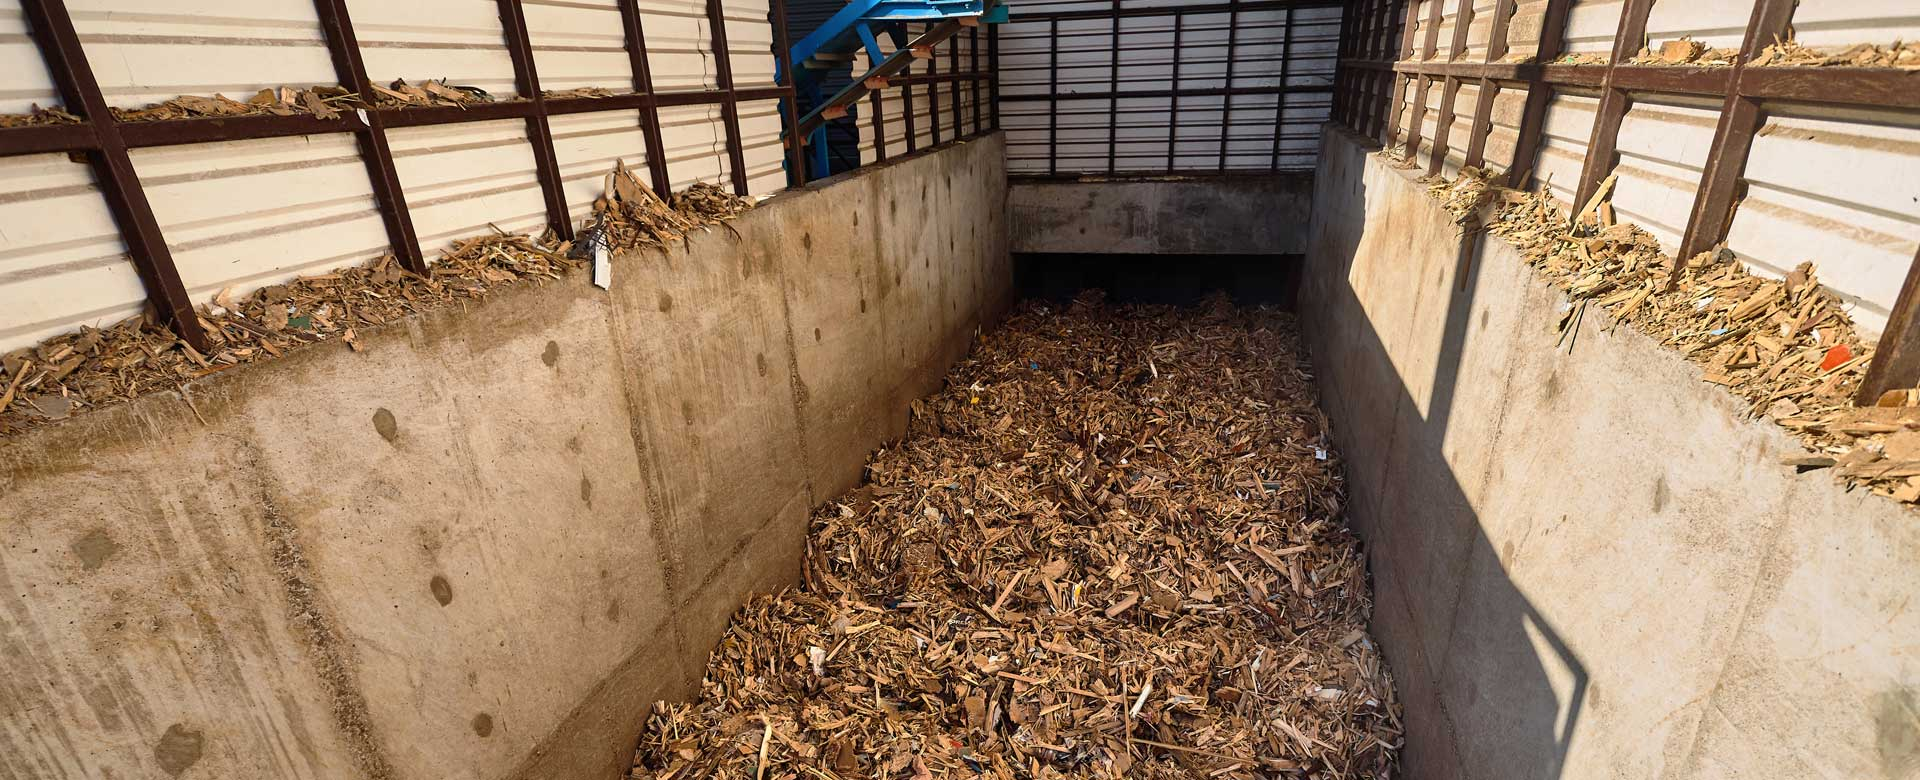 Wood Chip Materials Handling In feed Conveyor